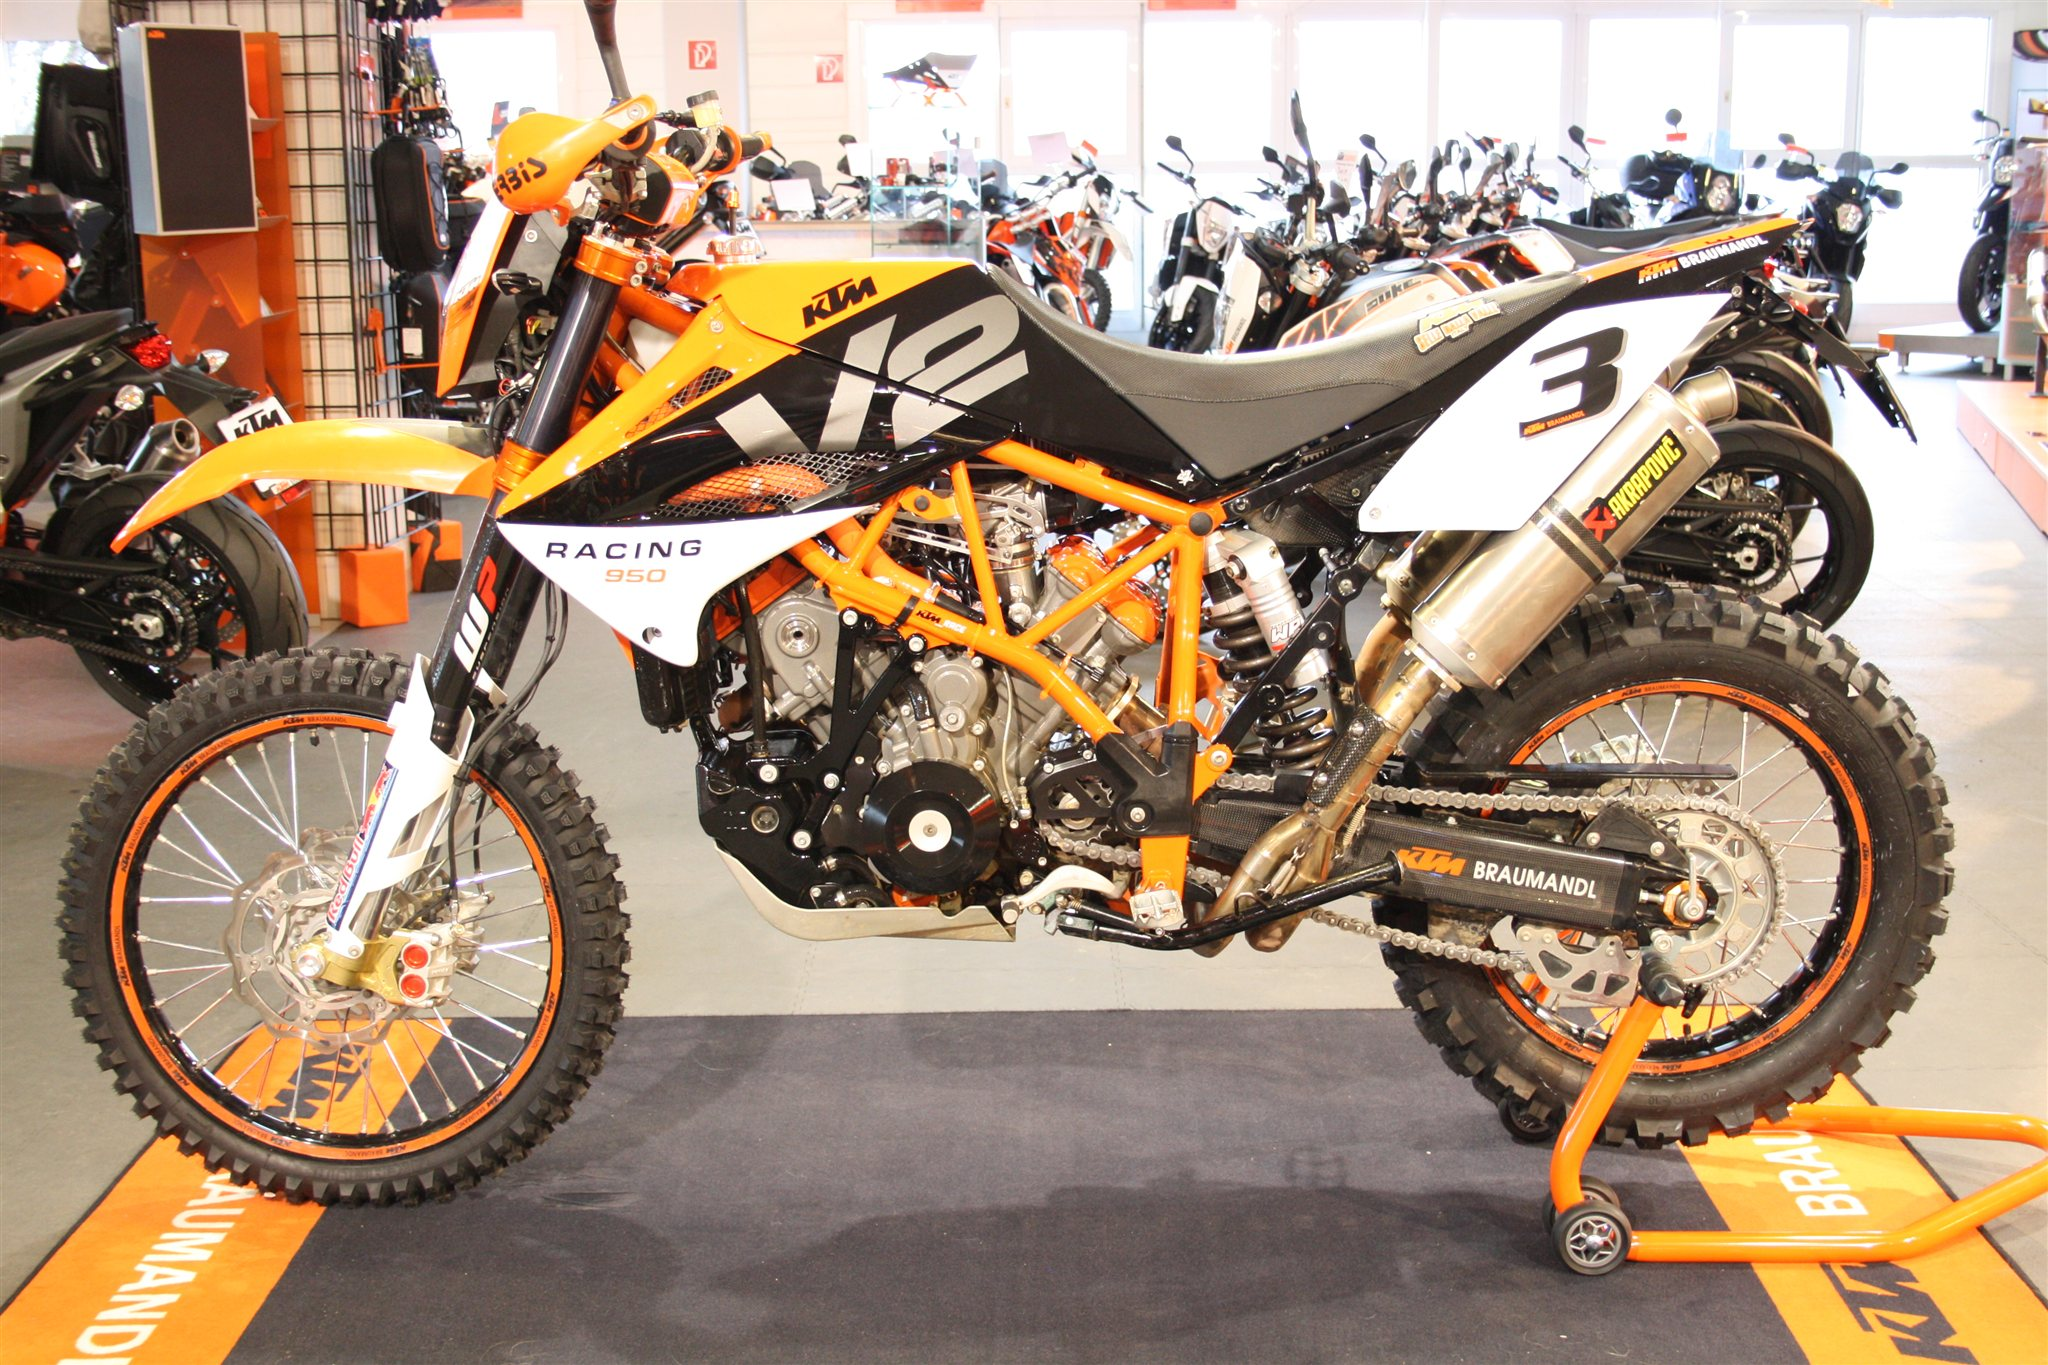 umgebautes motorrad ktm 950 superenduro r von ktm. Black Bedroom Furniture Sets. Home Design Ideas